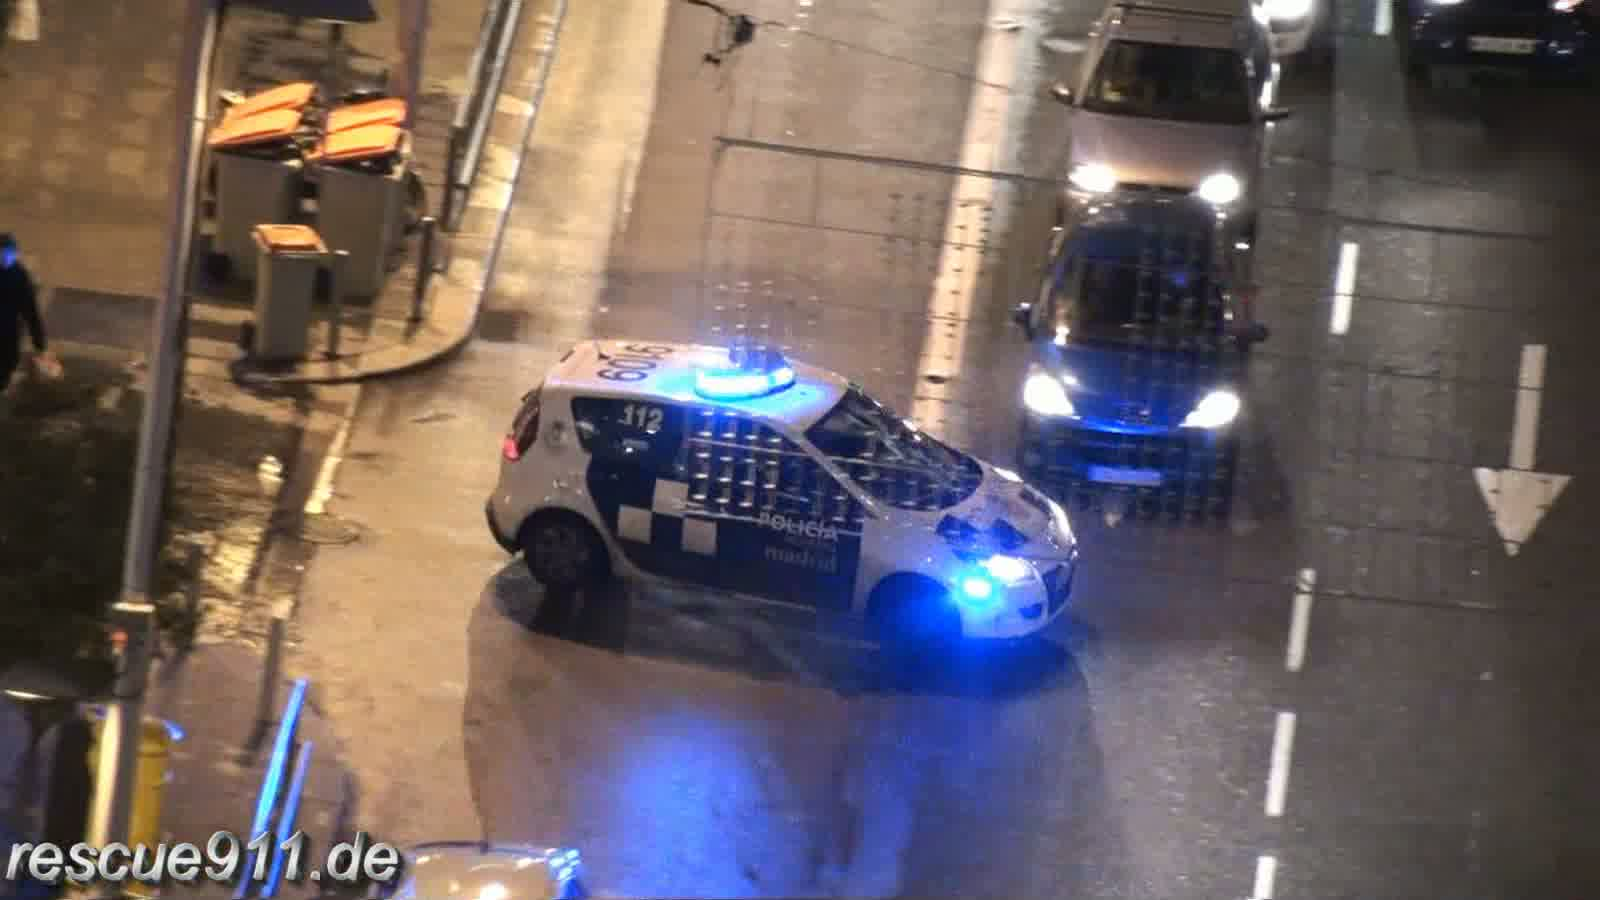 2x Policia Municipal + Ambulancia SAMUR Madrid (stream)